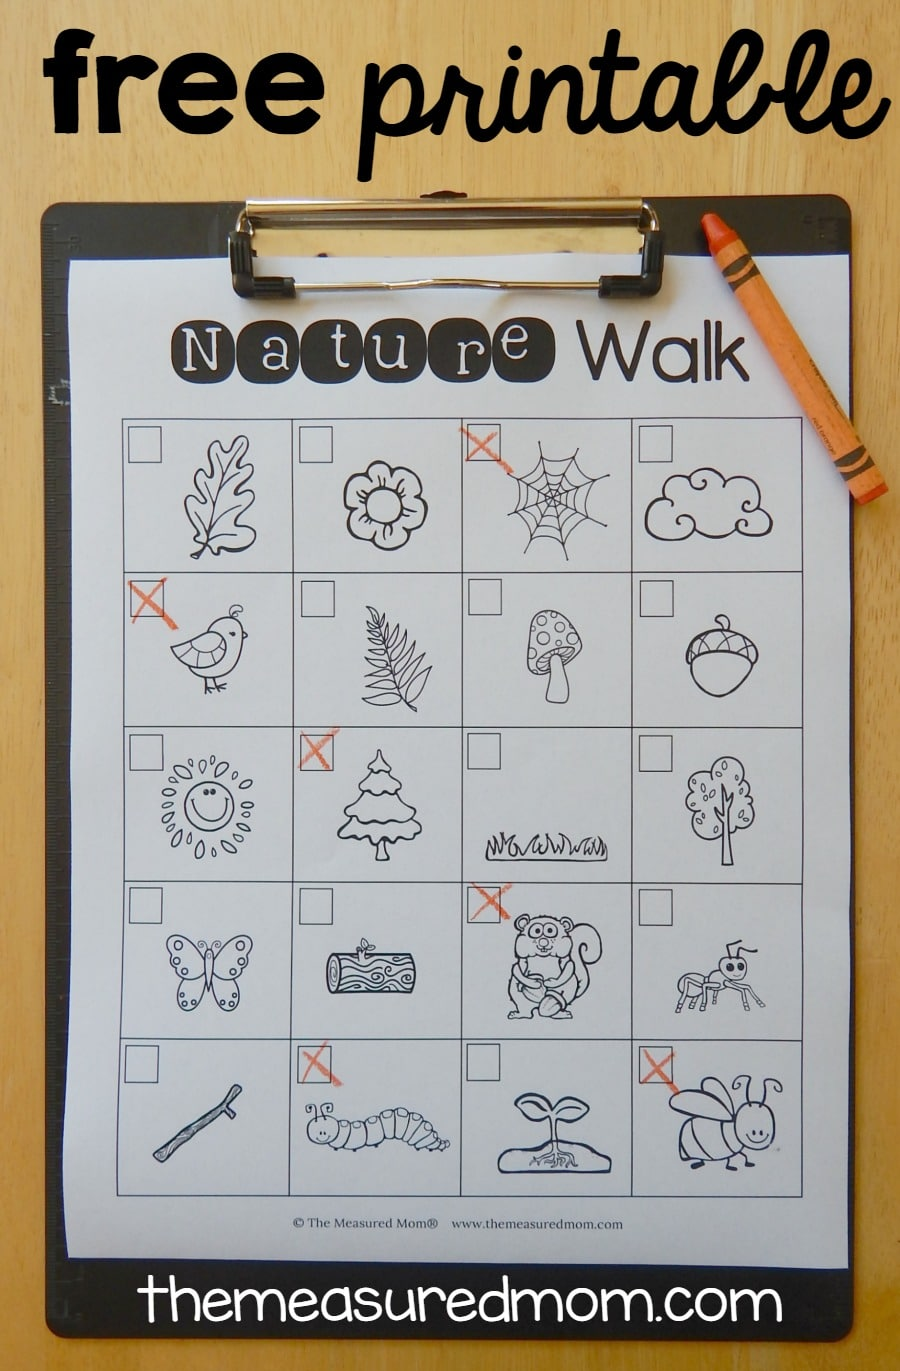 Free nature scavenger hunt The Measured Mom – Scavenger Hunt Worksheets